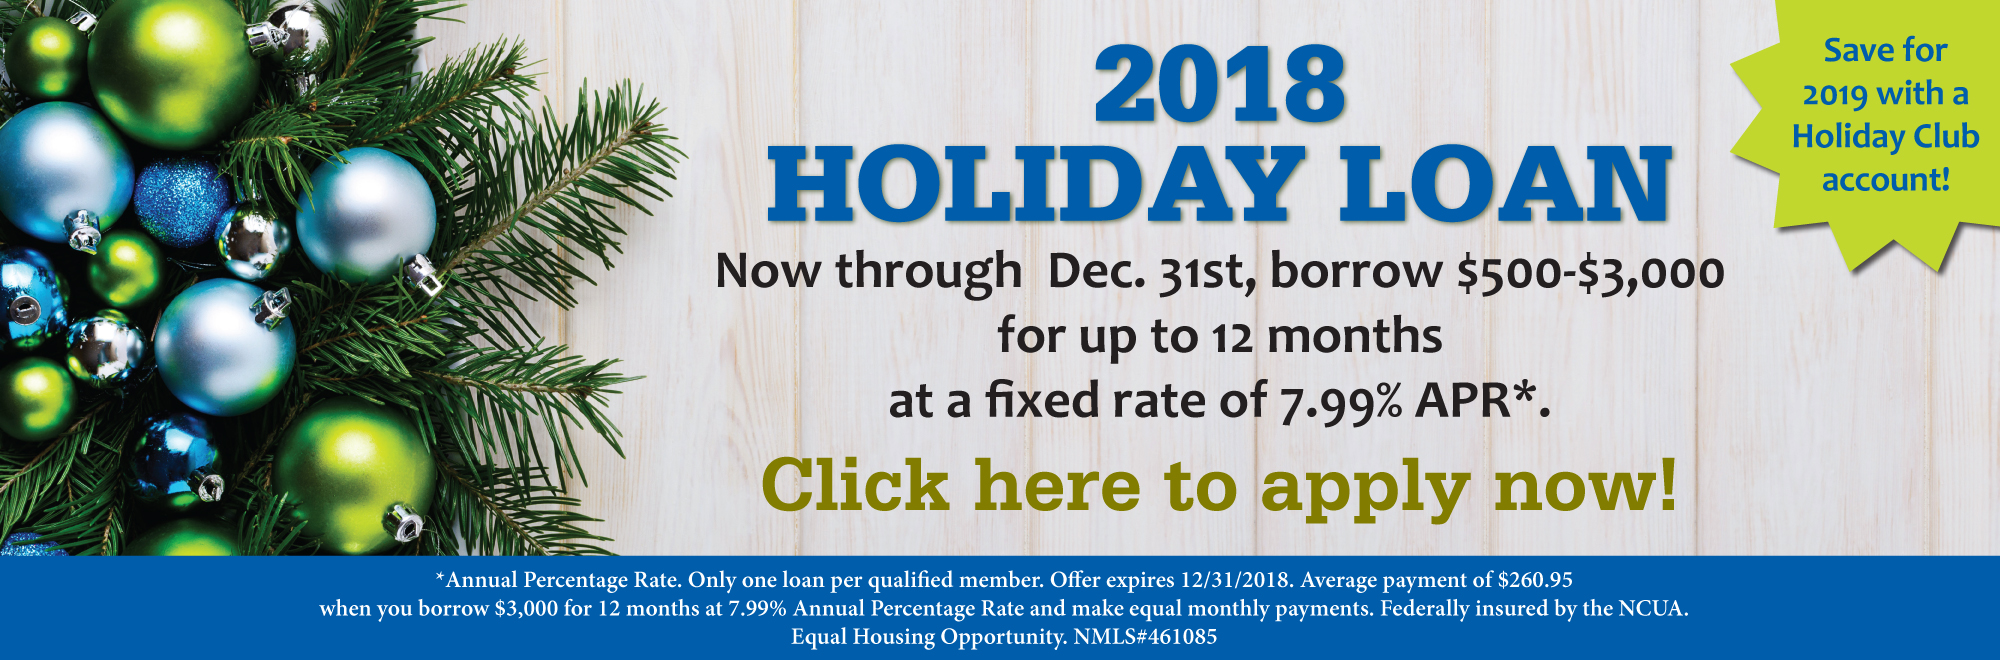 Click here to apply for our holiday loan! Call us at 800-245-6199 for details!